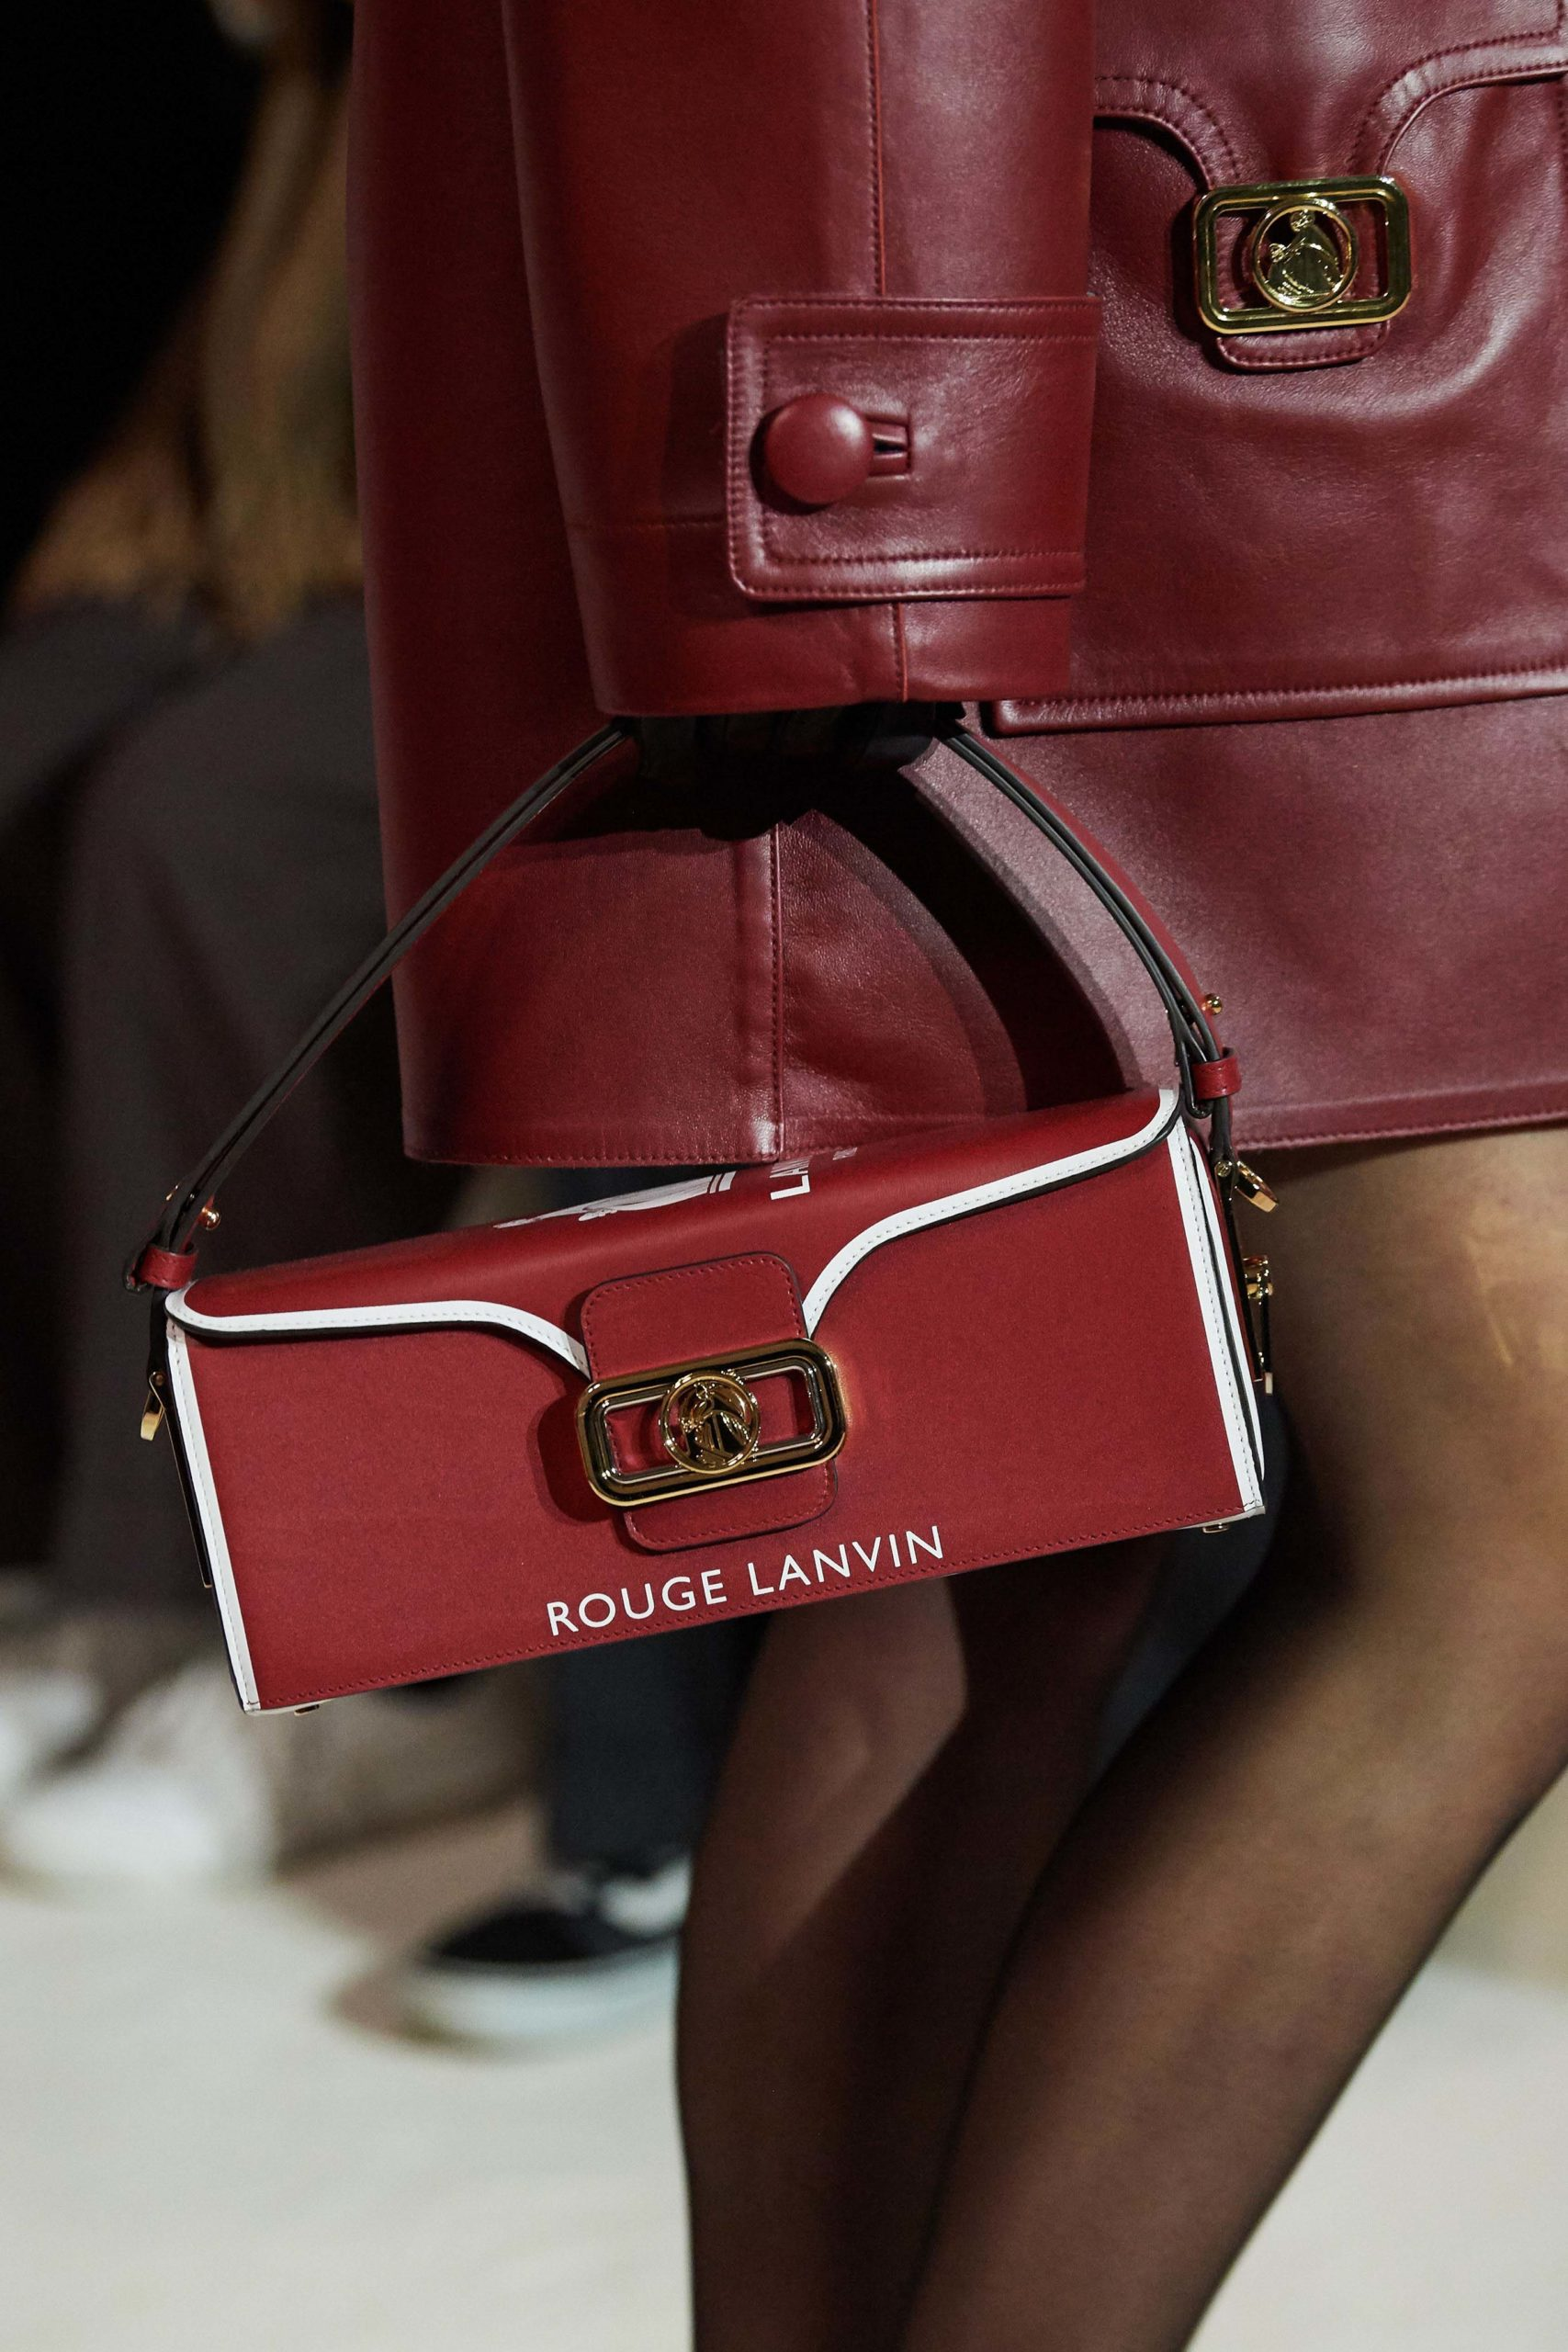 Lanvin Fall 2020 trends runway coverage Ready To Wear Vogue box bag vintage feel